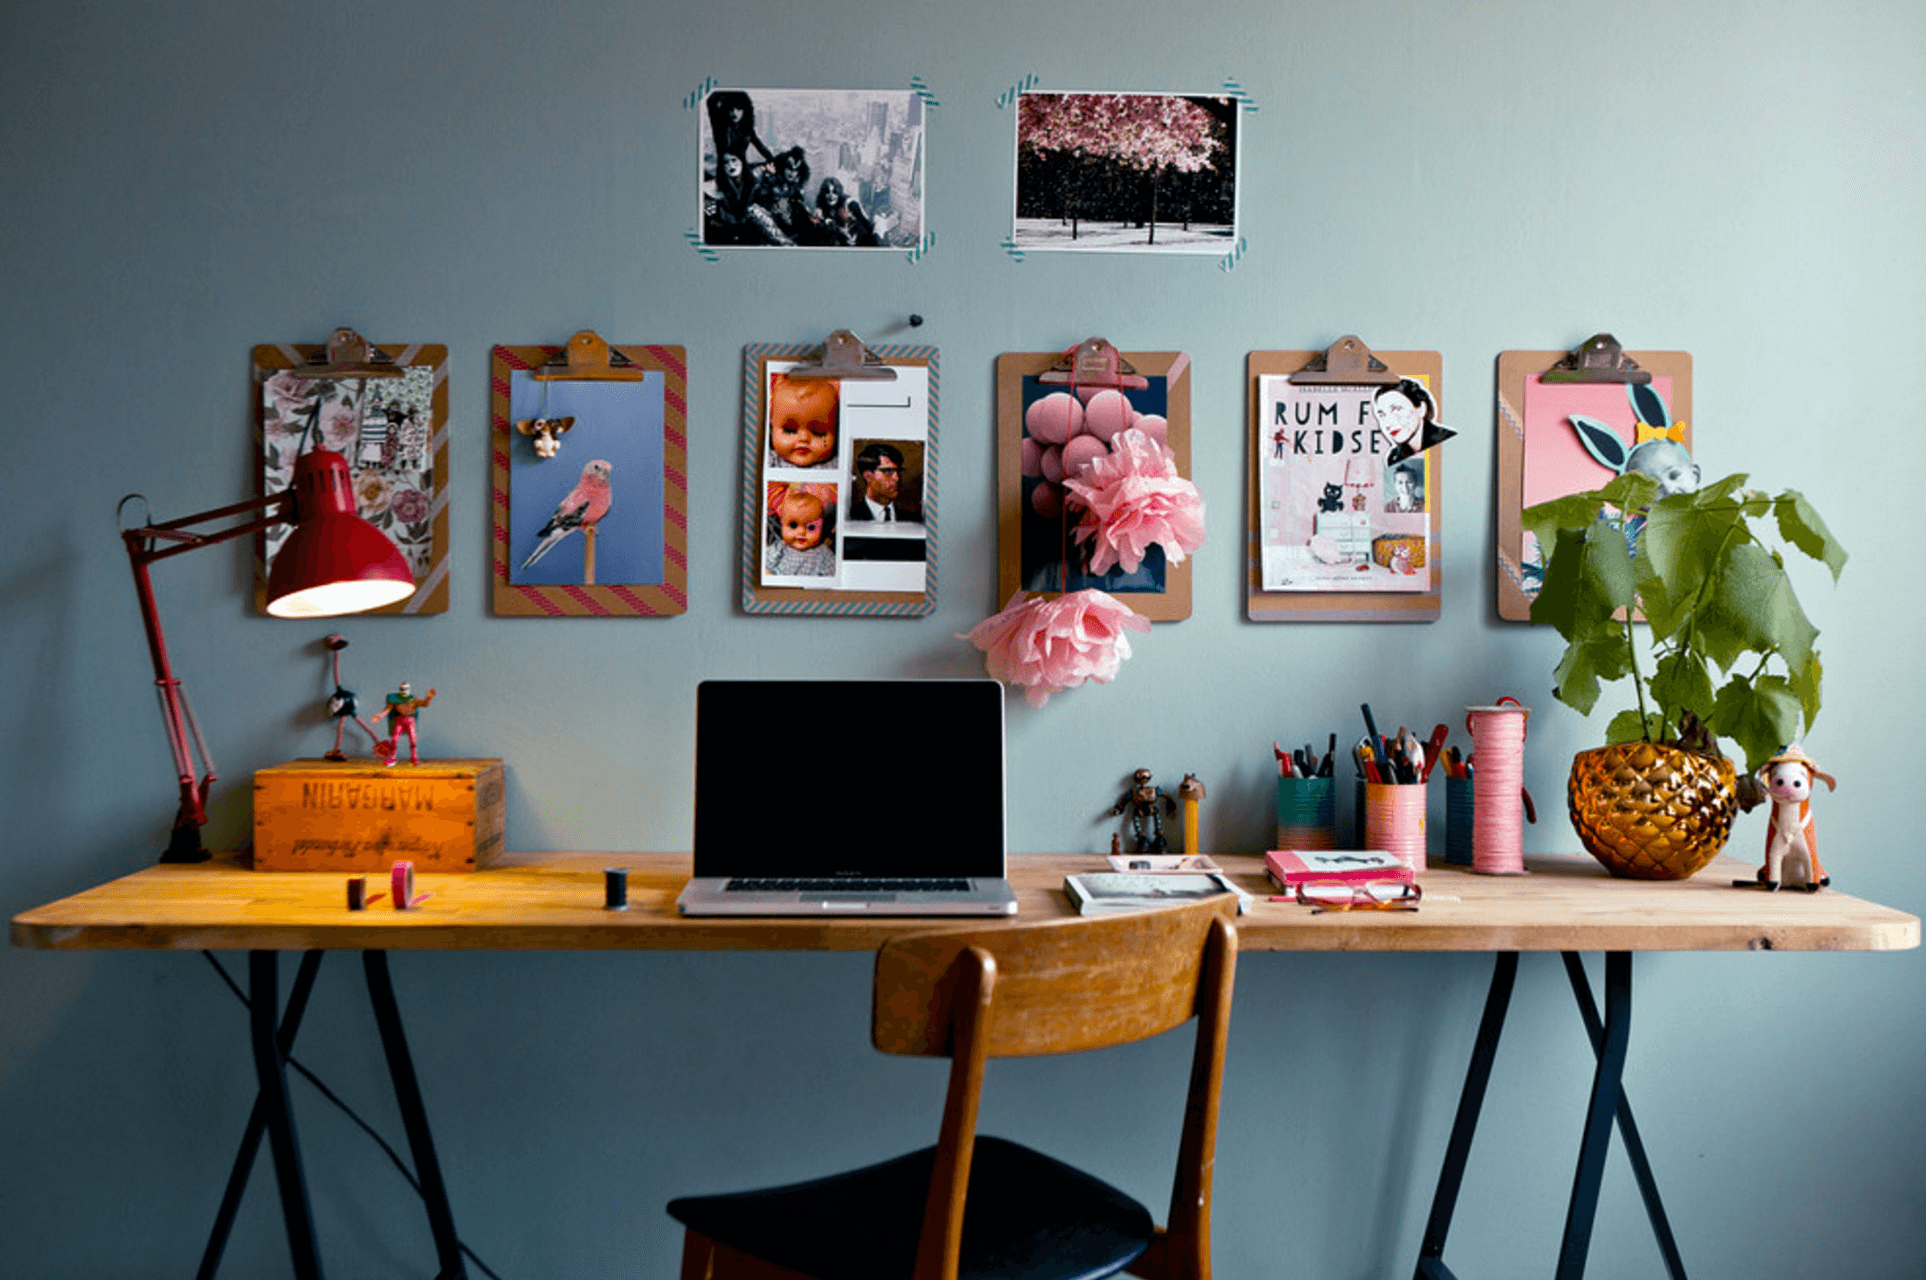 Fill your workspace with as many images as possible to create a wall of art that speaks to you